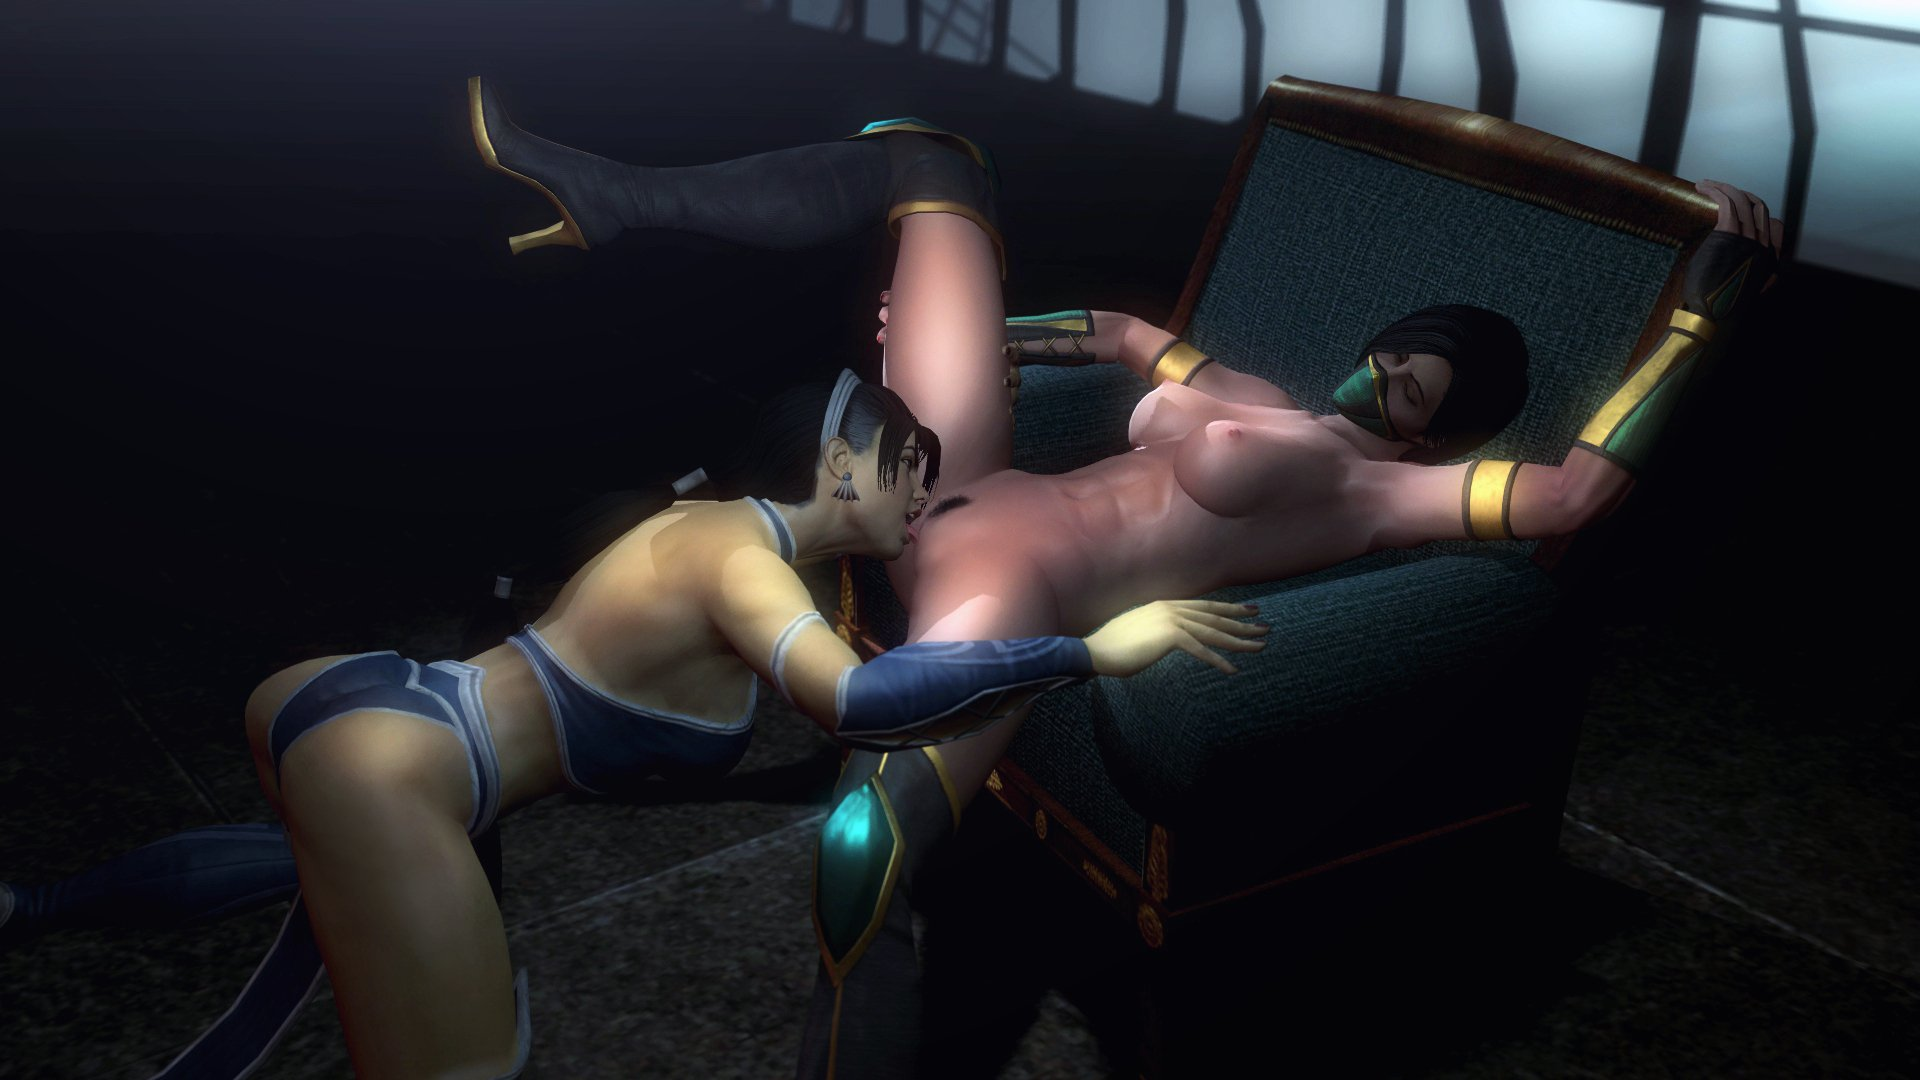 Mortal kombat jade and kitana leabian sex  erotica photo